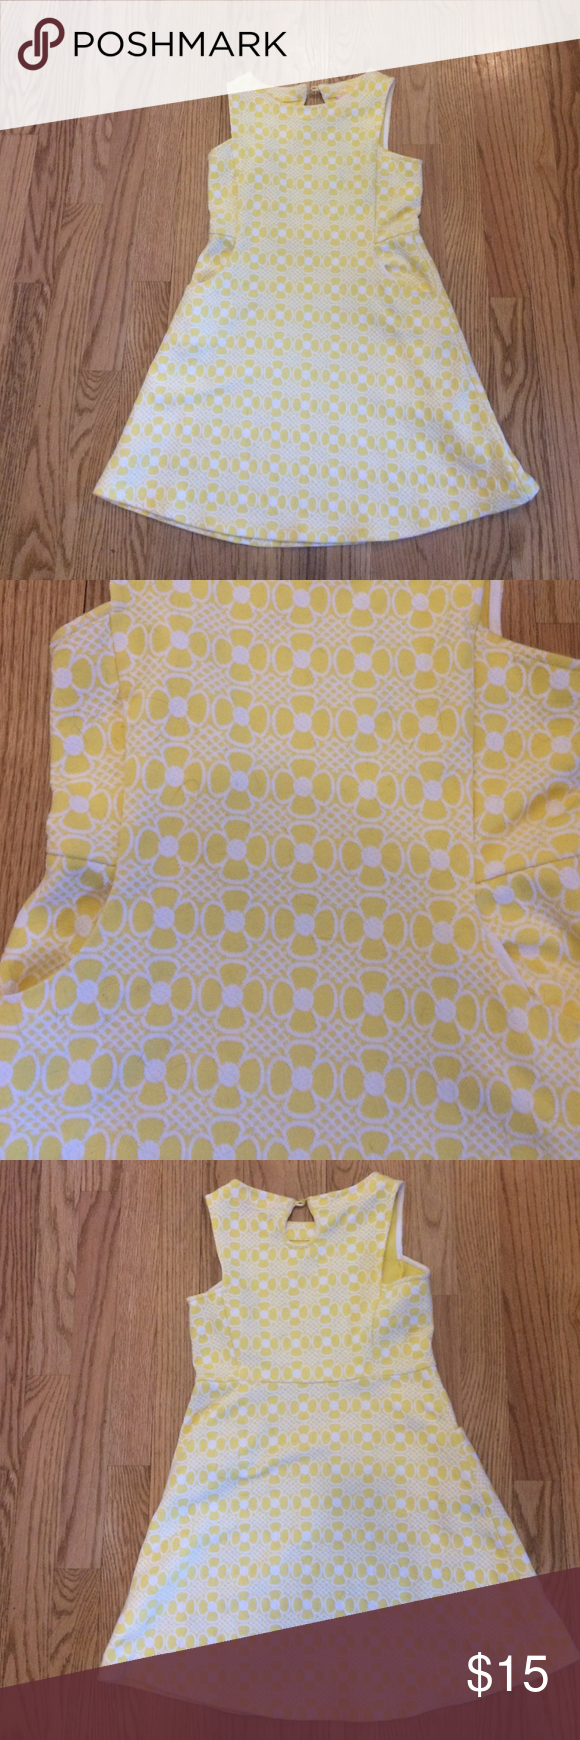 Yellow And White Lilly Pulitzer Girls Dress Bright Yellow With Cute